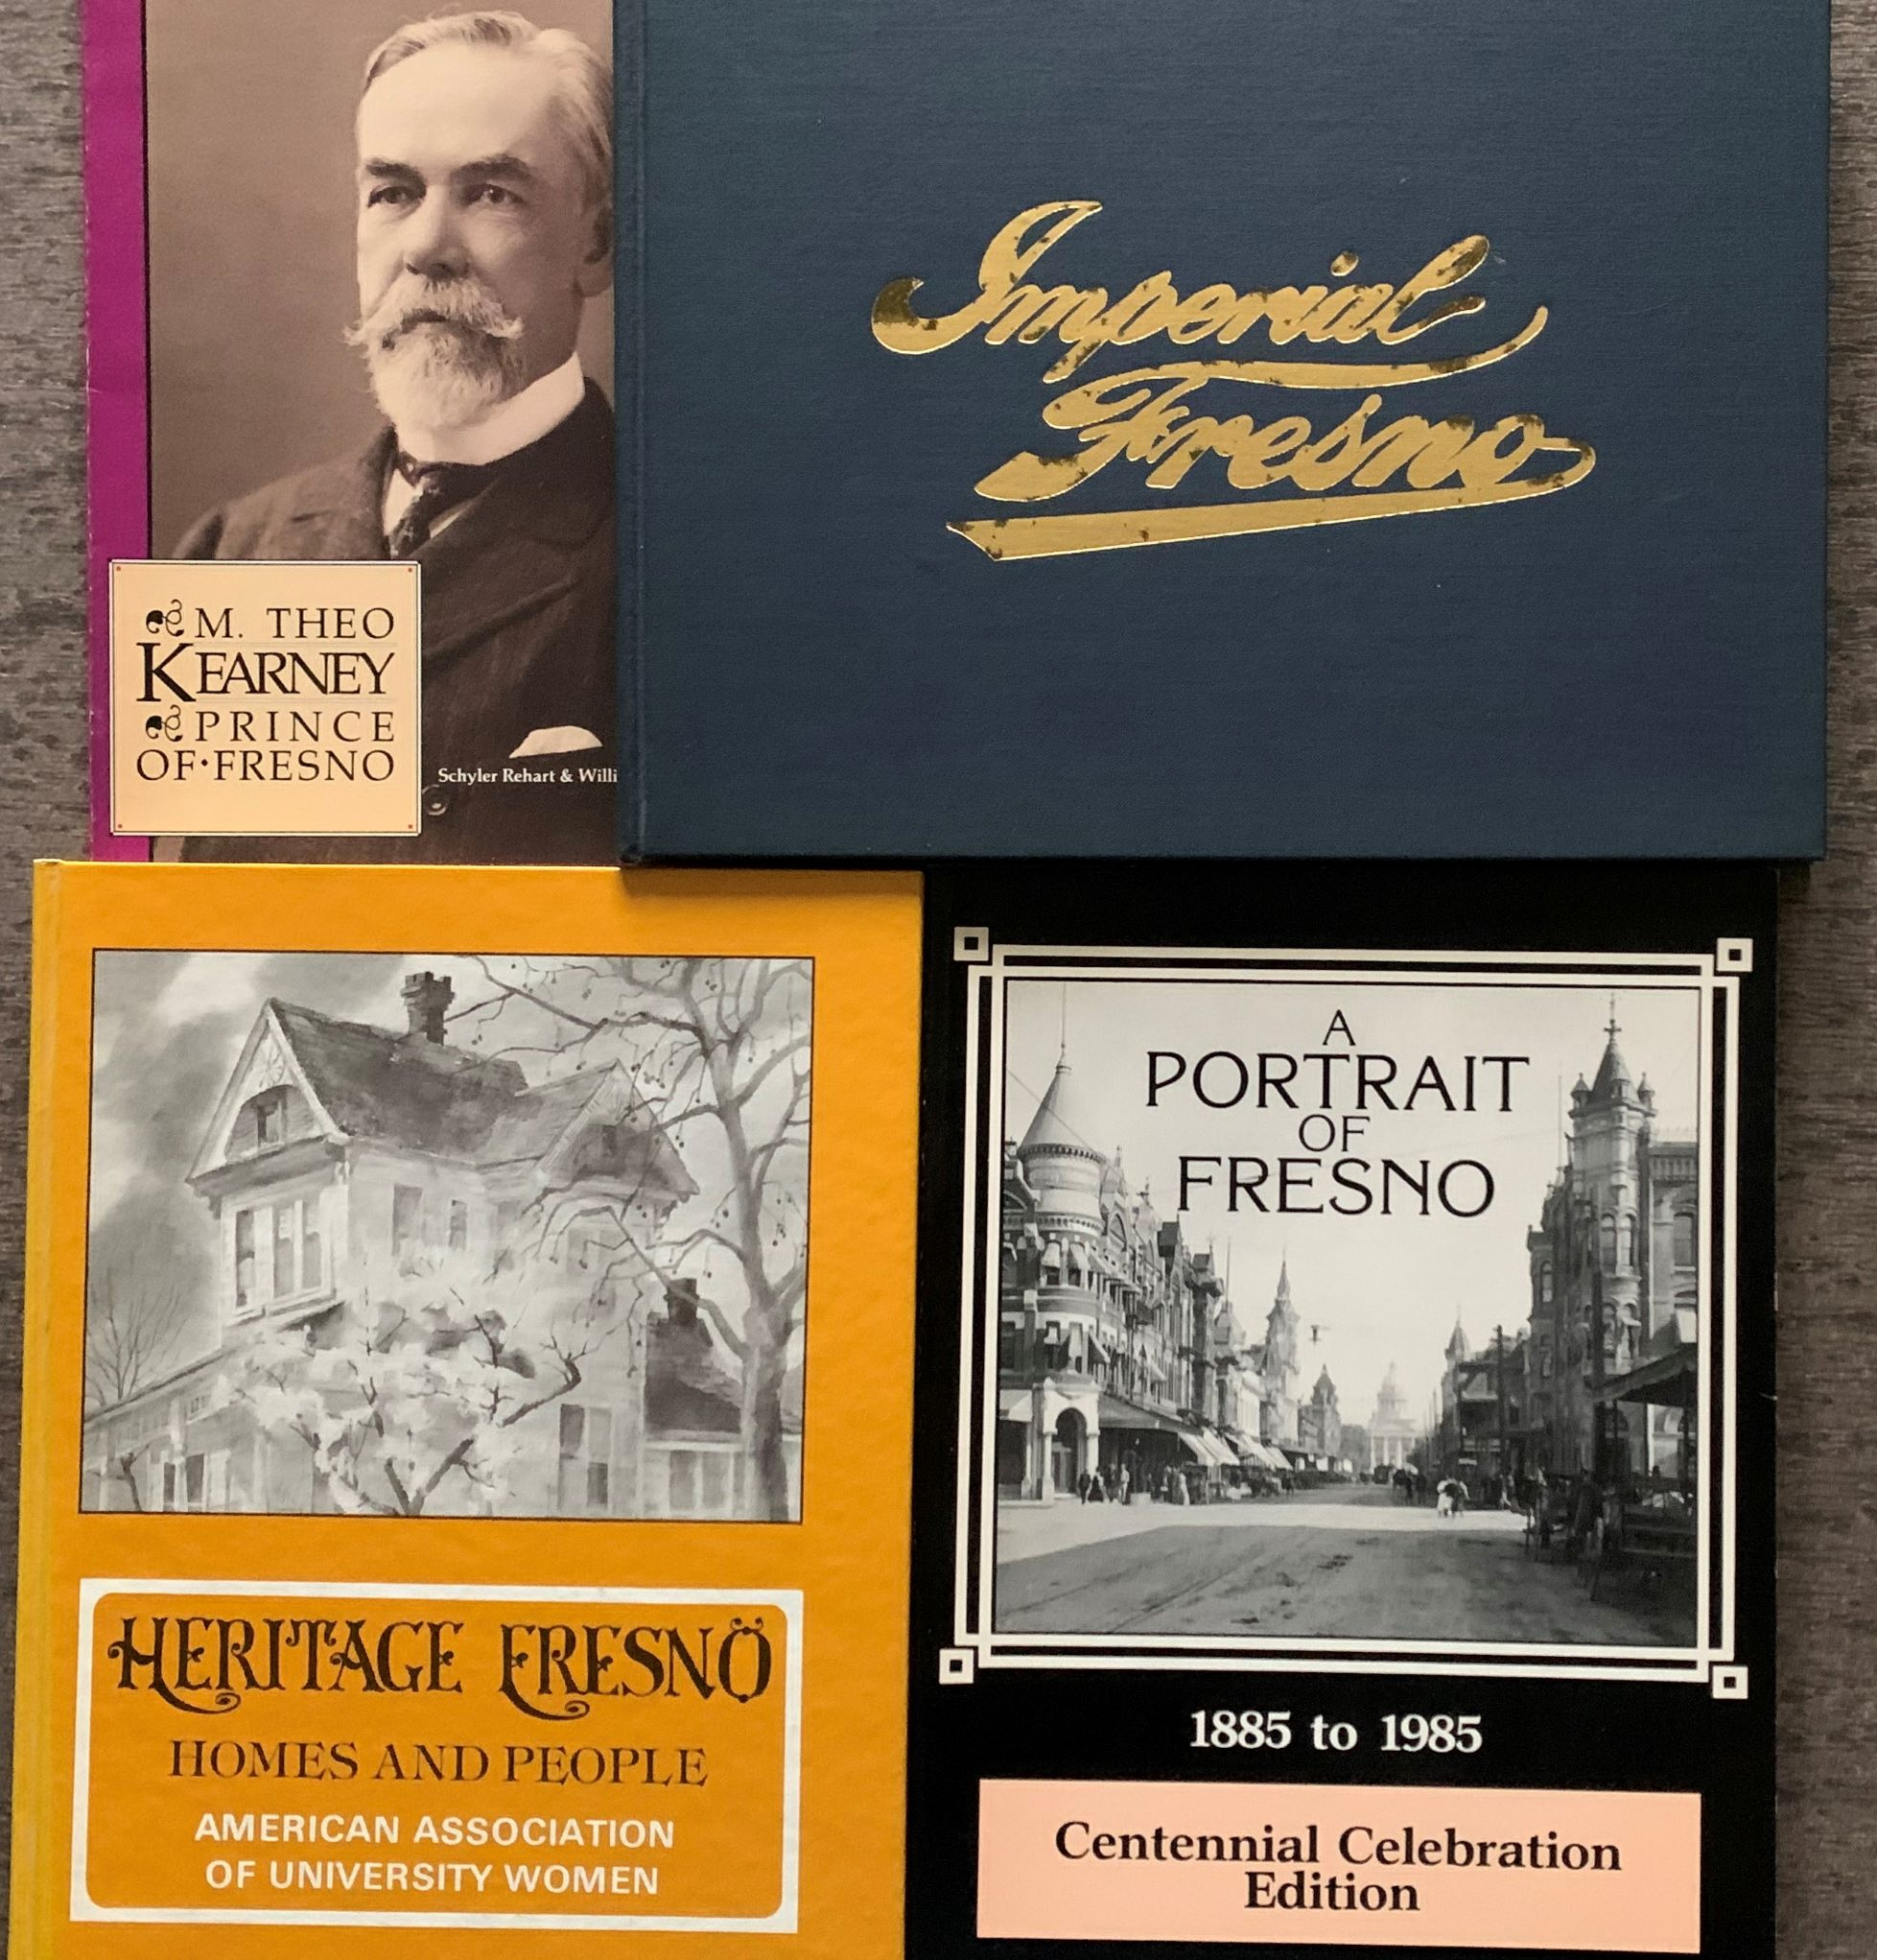 Image for [4 Titles] (I.) Facsimile Reproduction, Imperial Fresno (II.) Heritage Fresno, Homes and People (III.) A Portrait of Fresno, 1885 to 1985 (IV) M. Theo Kearney, Prince of Fresno.